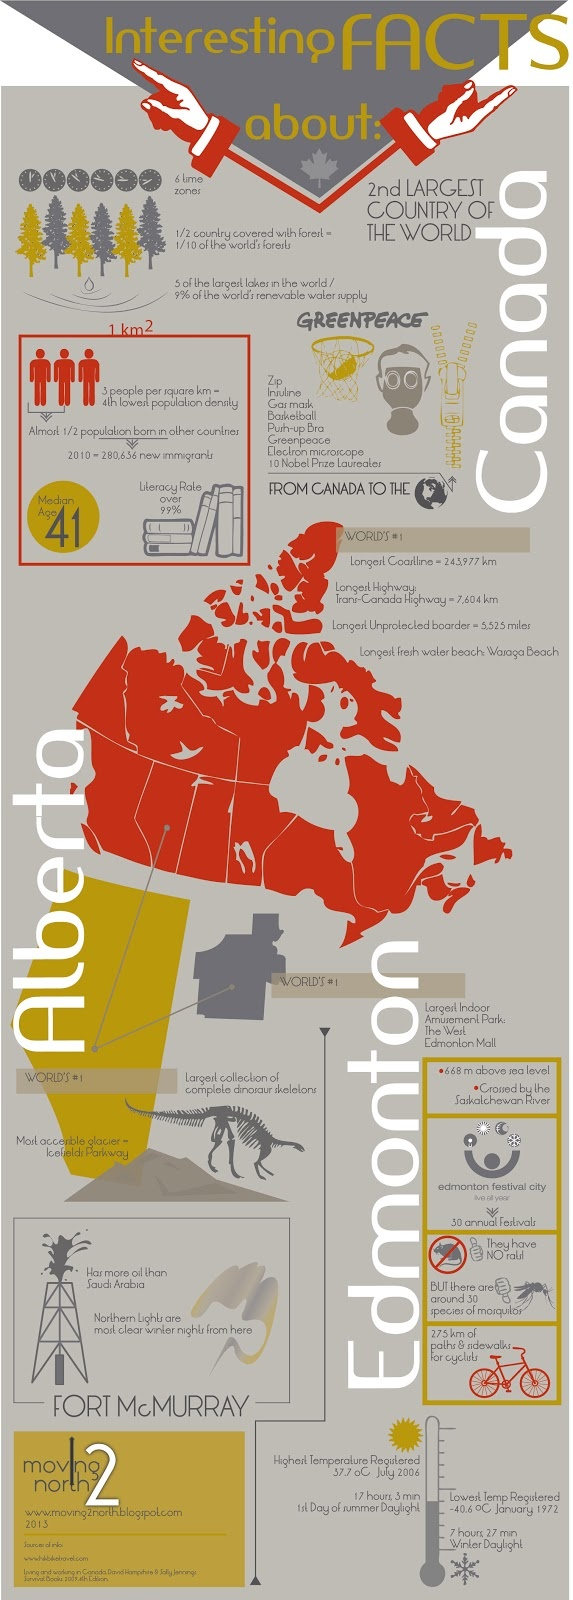 #canada #alberta and #edmonton interesting facts. #INFOGRAPHIC  www.moving2north.blogspot.com